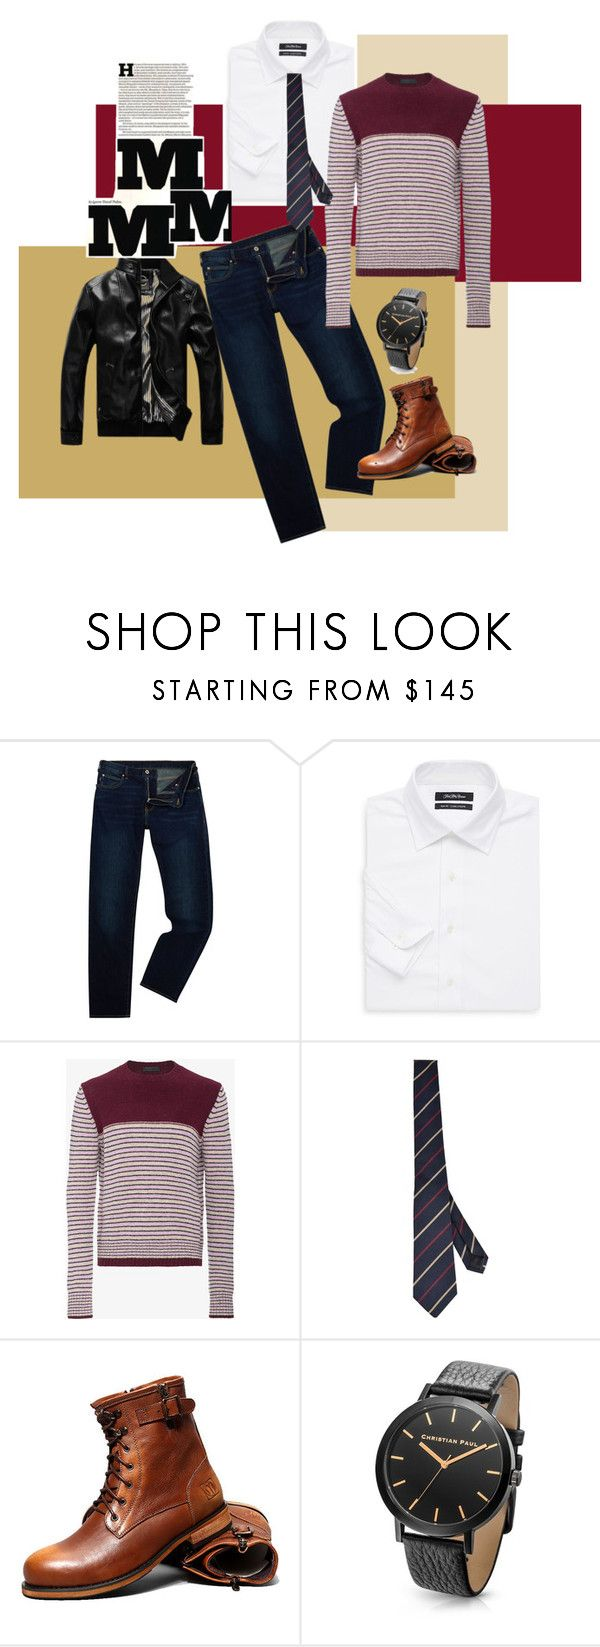 """Thanks giving dinner look"" by kennyhazelwood on Polyvore featuring Armani Jeans, Saks Fifth Avenue, Prada, Gucci, Maison Margiela, men's fashion and menswear"